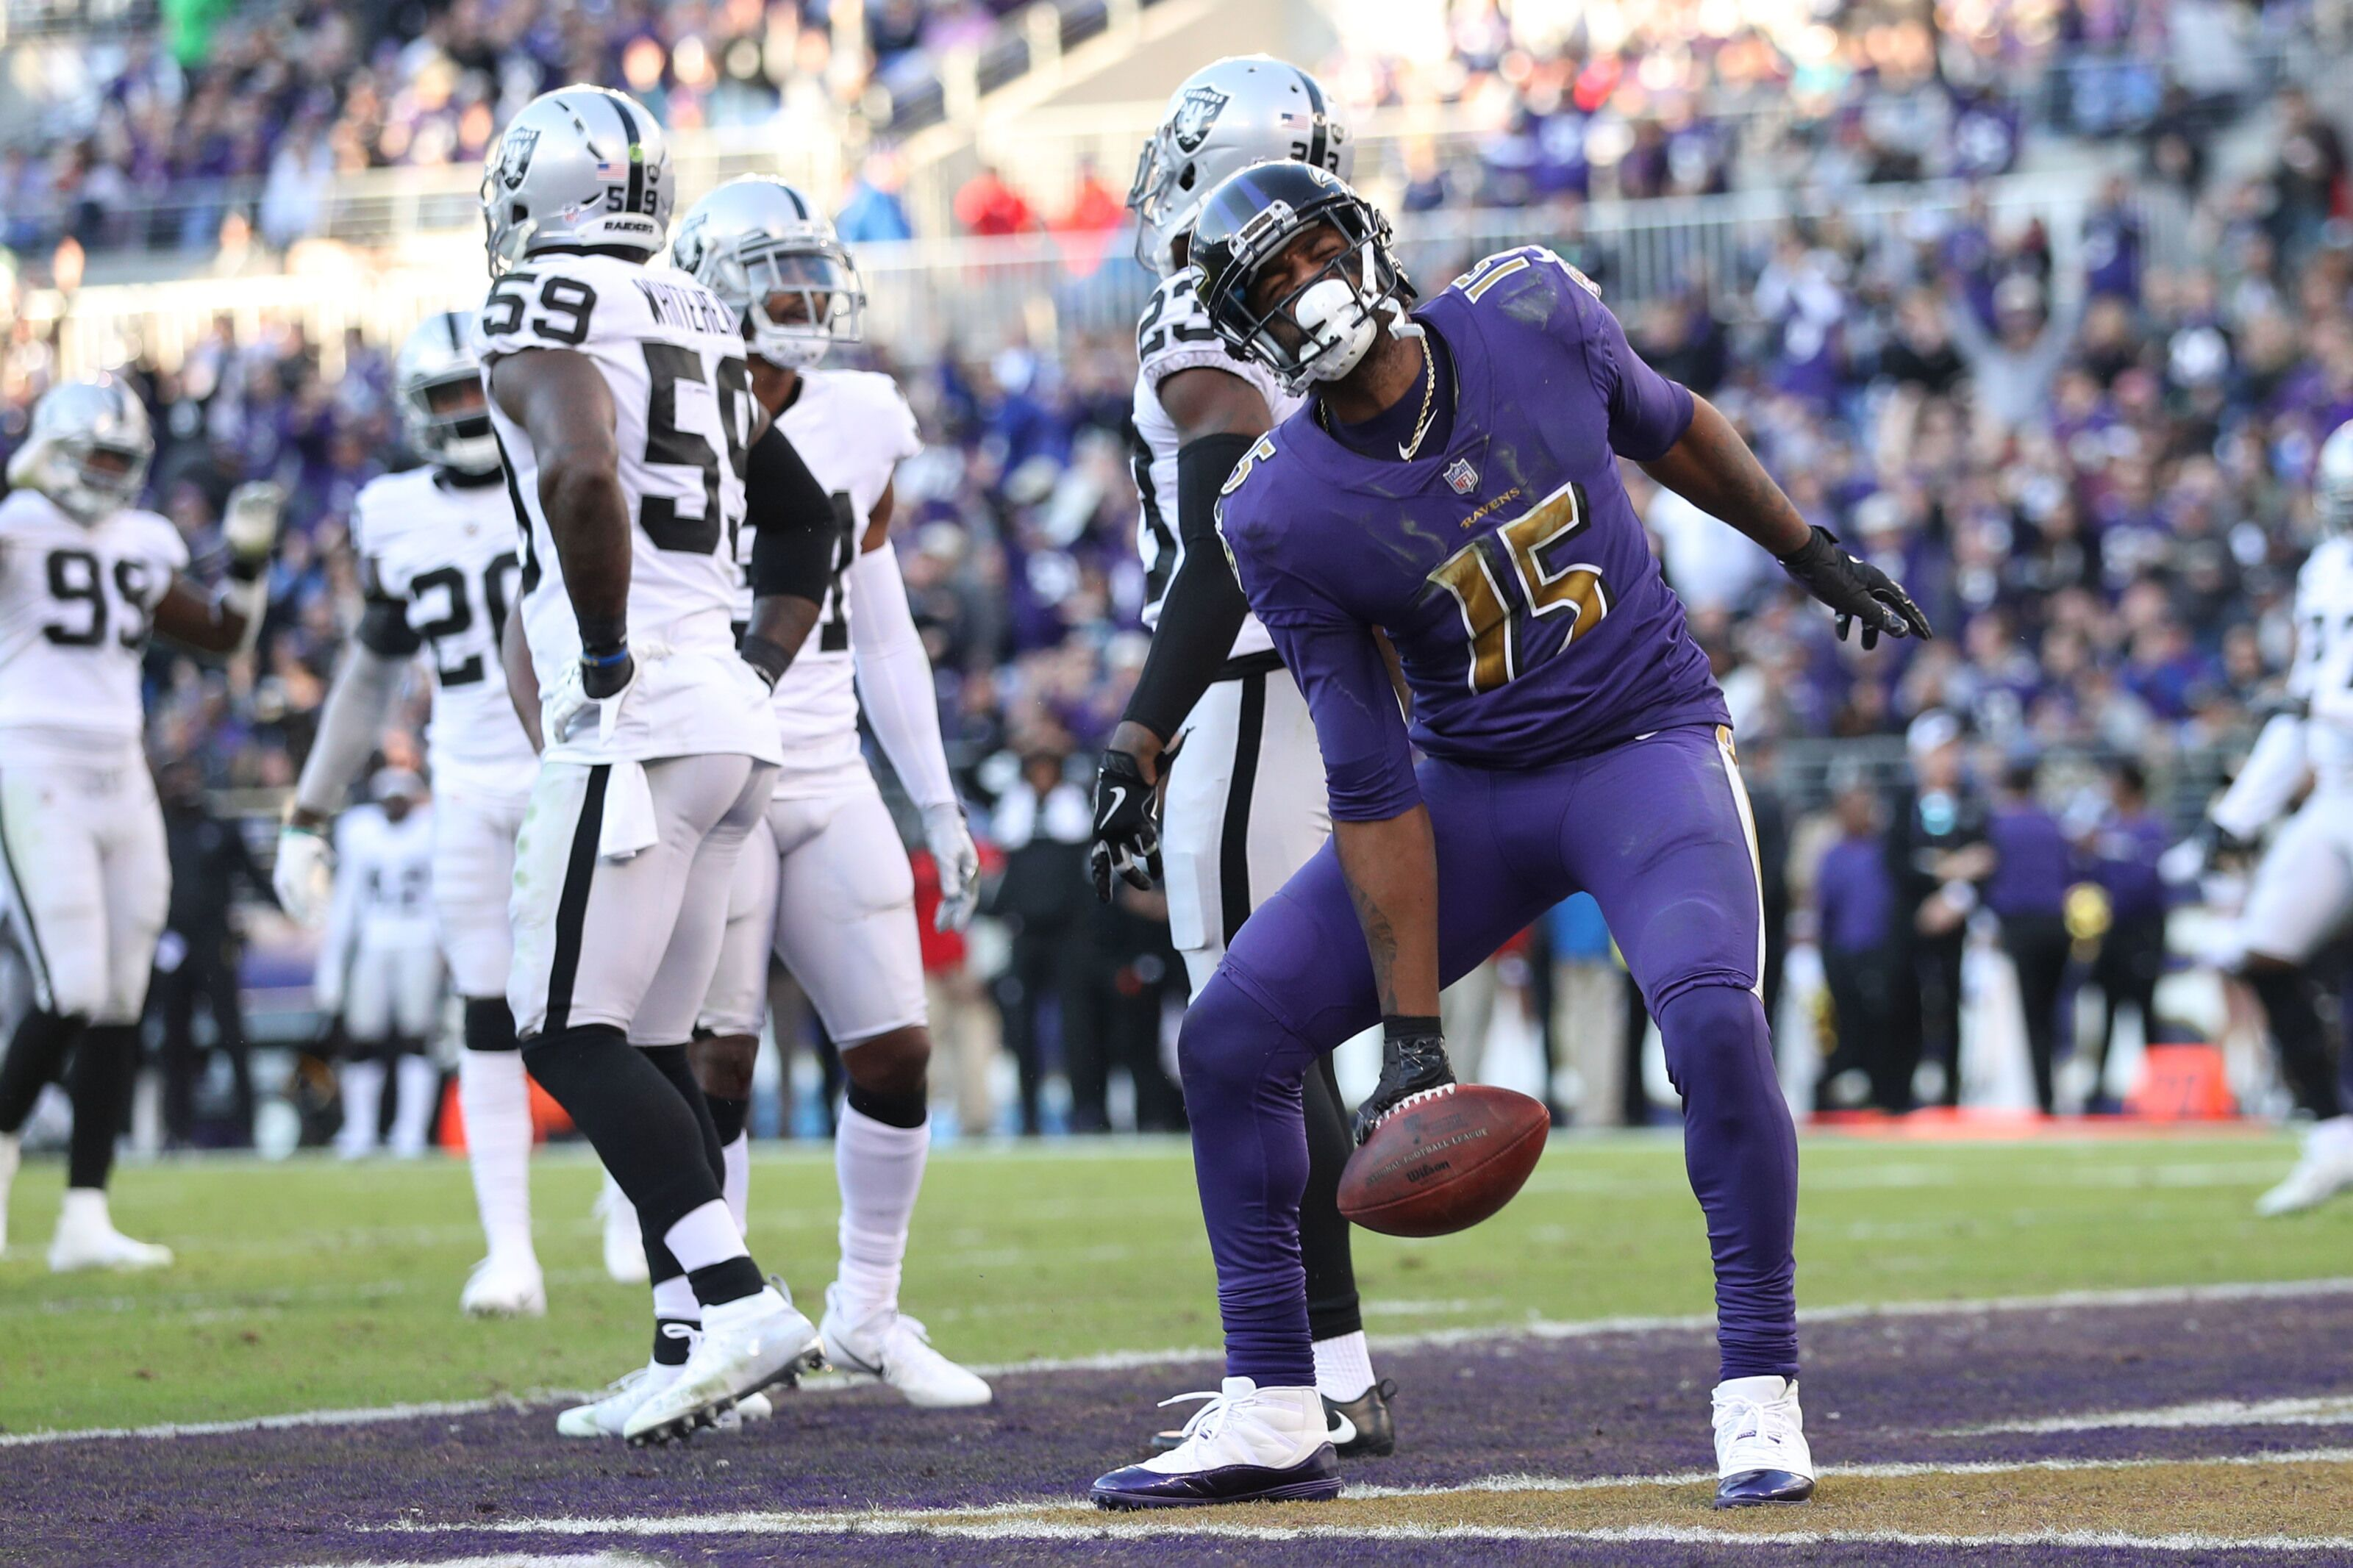 Raiders lifeless in second half again, fall to Ravens on the road